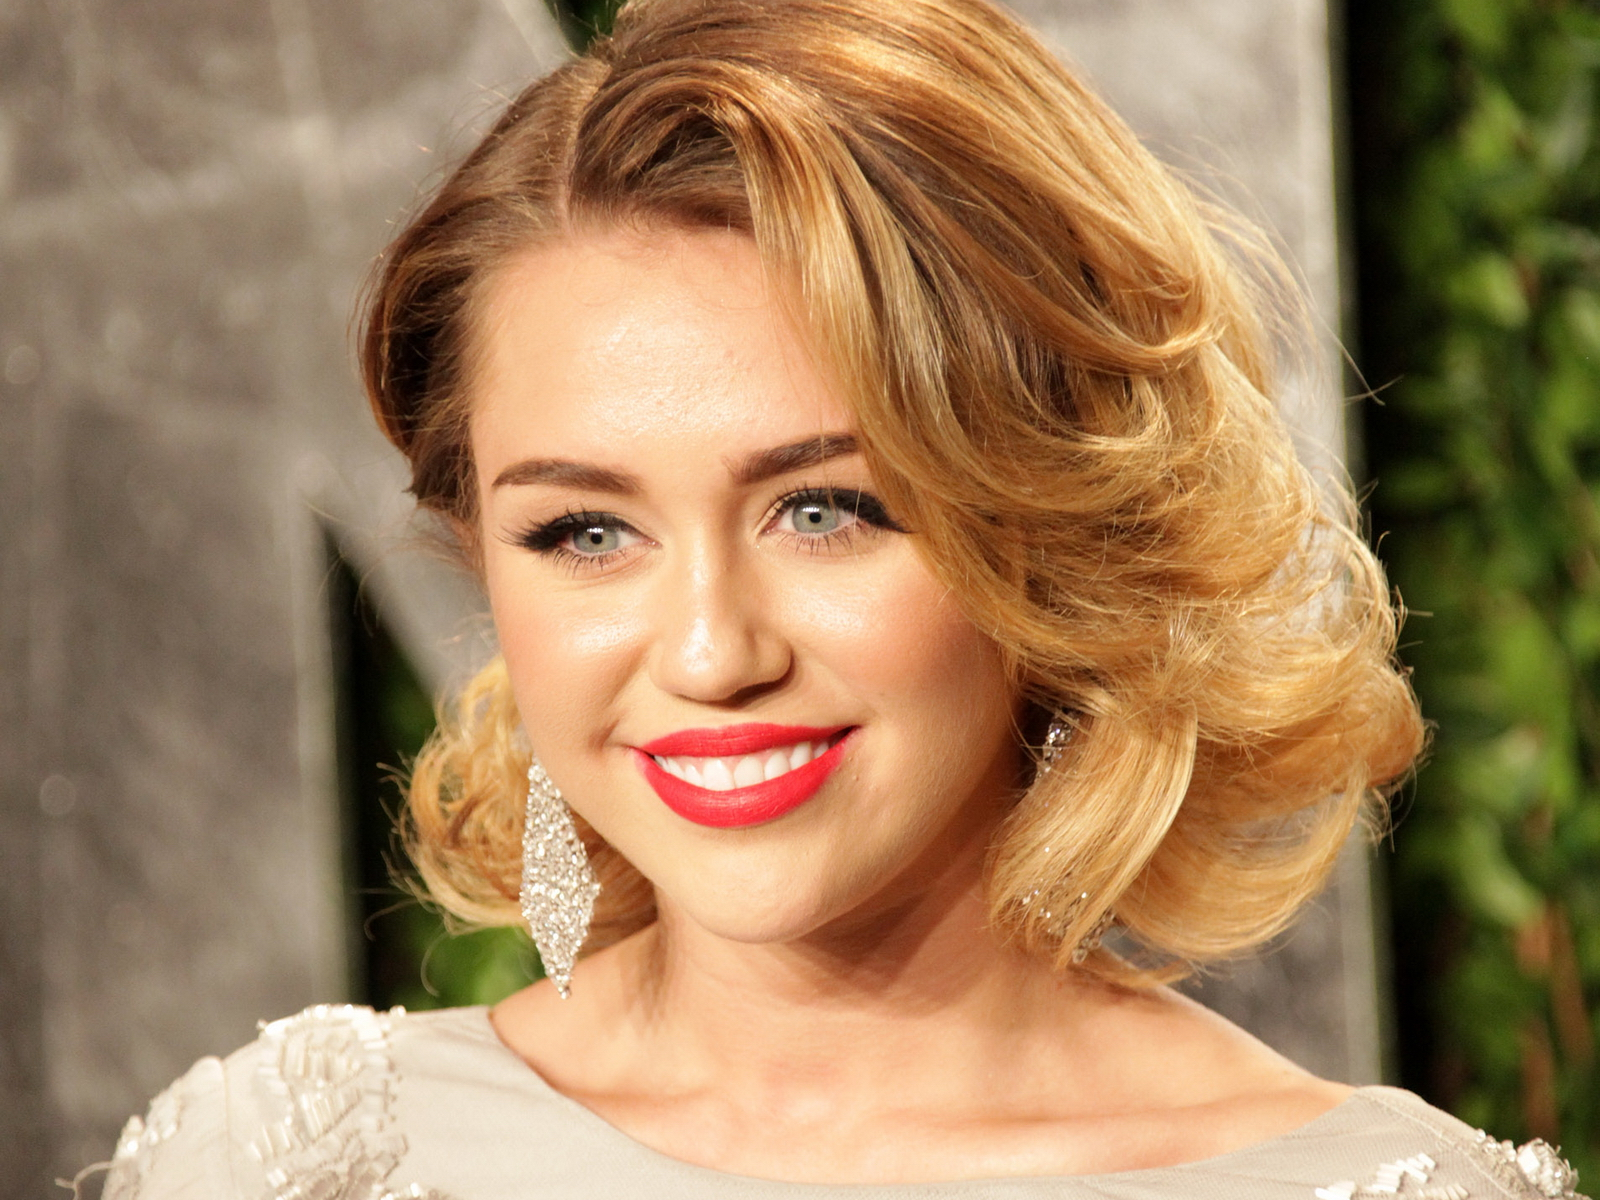 Miley Cyrus Images Miley Cyrus Medium Short Hair 518089 Hd Wallpaper Backgrounds Download